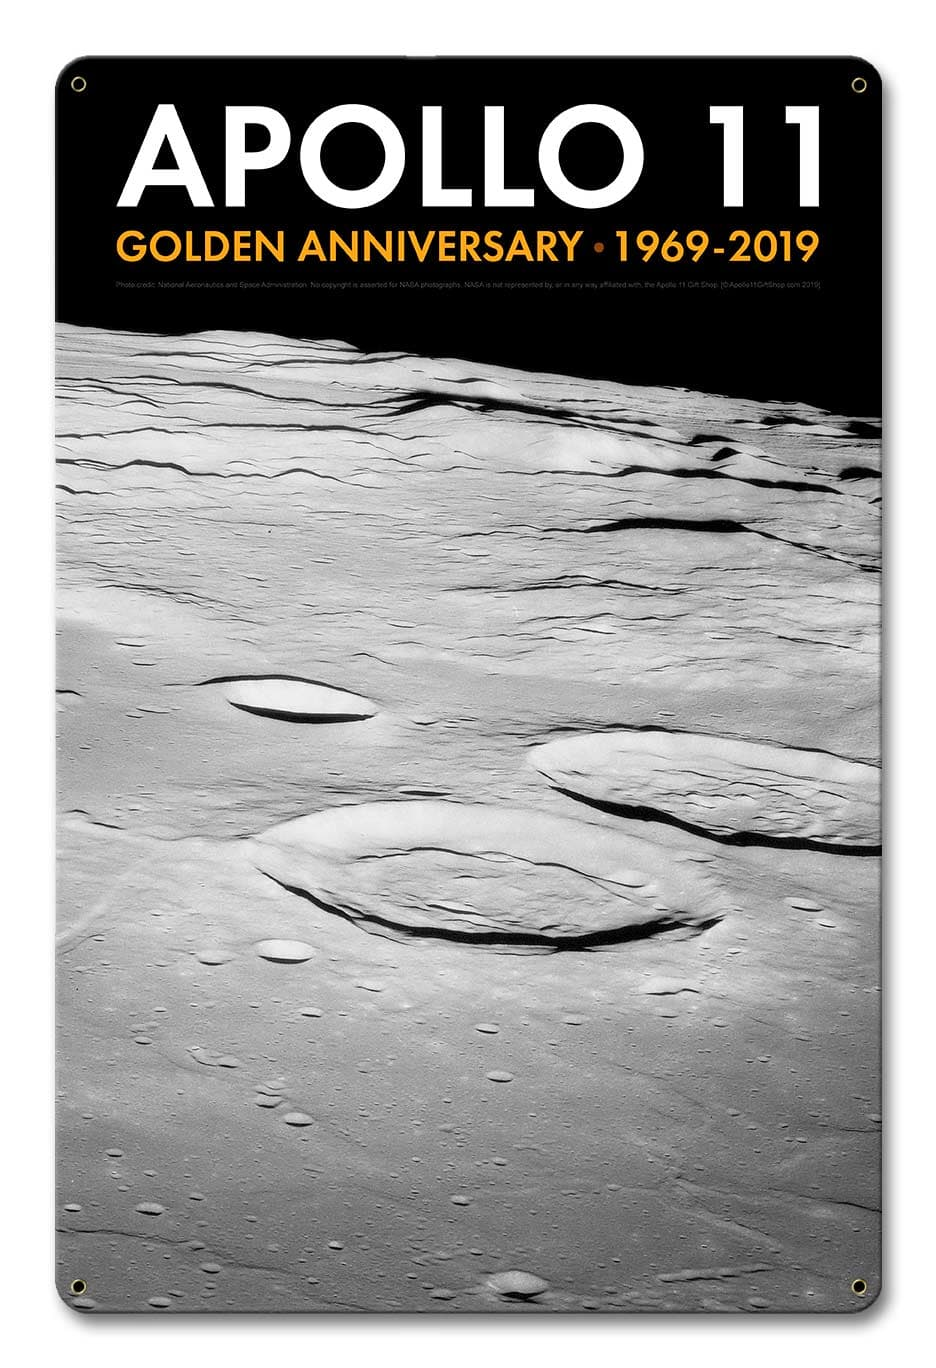 Apollo 11 50Th Anniversary Craters On The Lunar Surface Black Metal Sign Vintage Metal Sign, 12 By 18 by Vintage Sign Company item number: AGS023